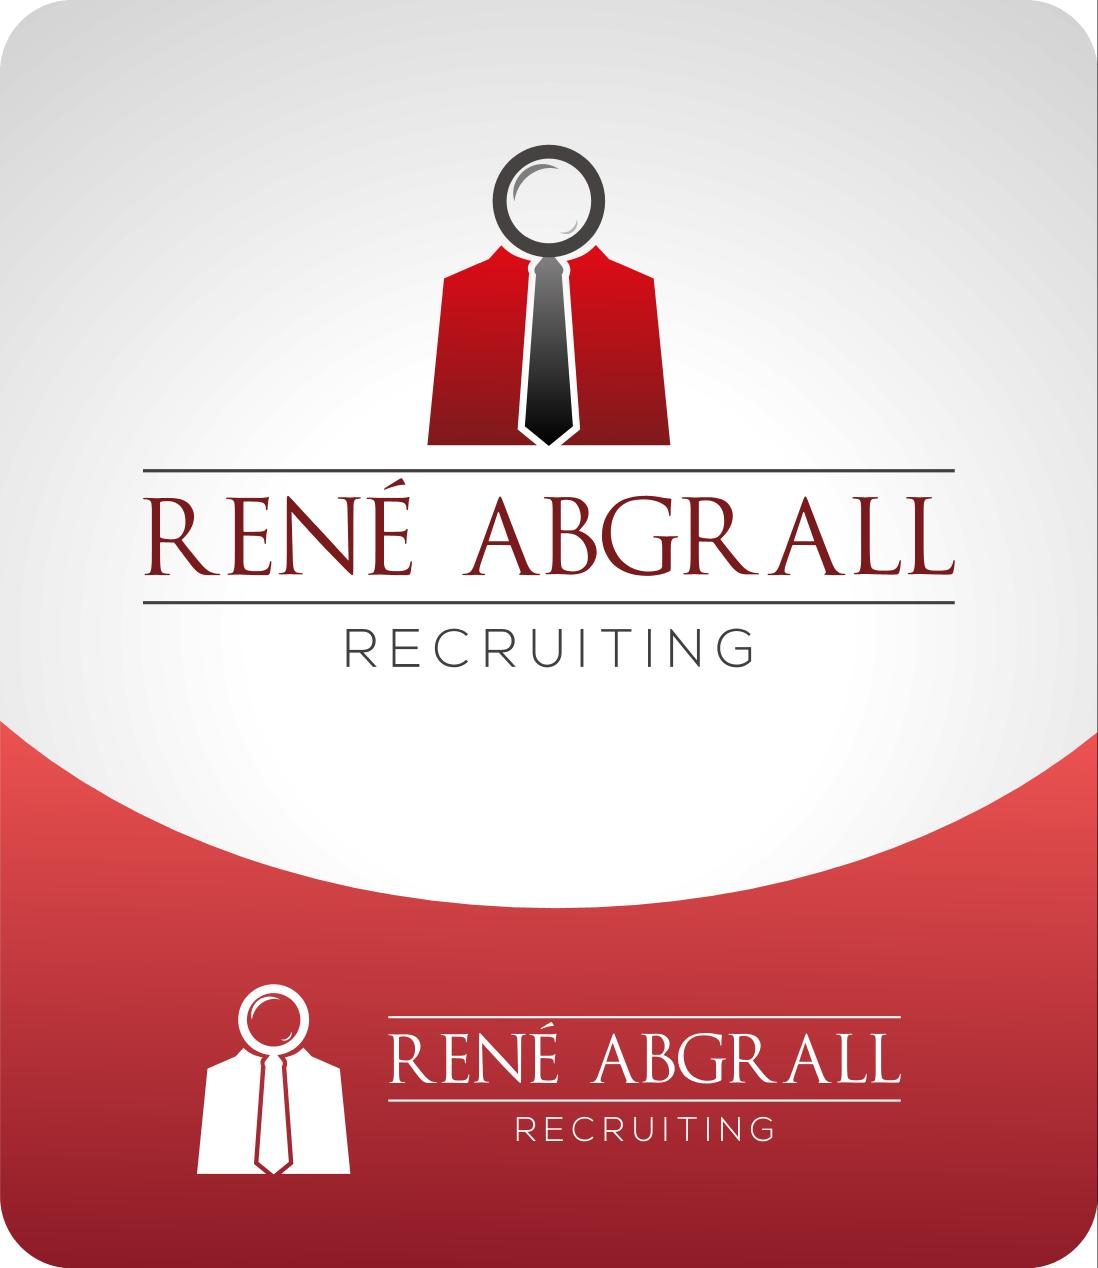 Logo Design by luvrenz - Entry No. 29 in the Logo Design Contest Artistic Logo Design for René Abgrall Recruiting.